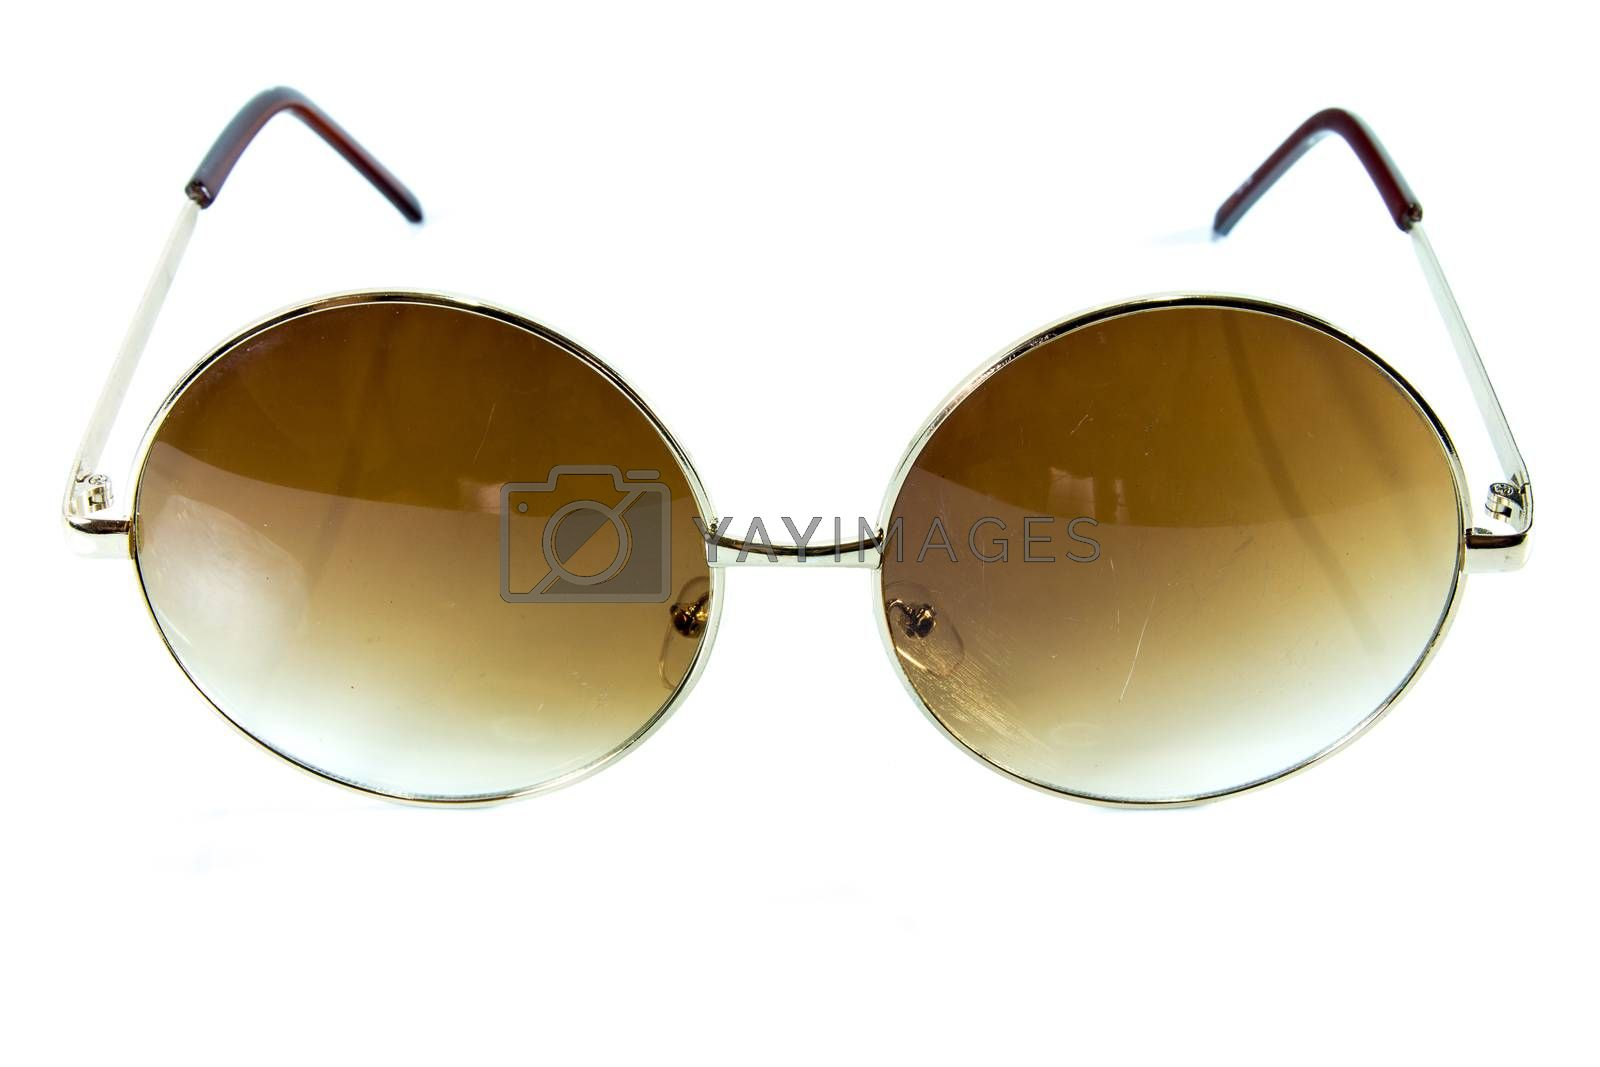 Royalty free image of Sunglasses by theerapoll